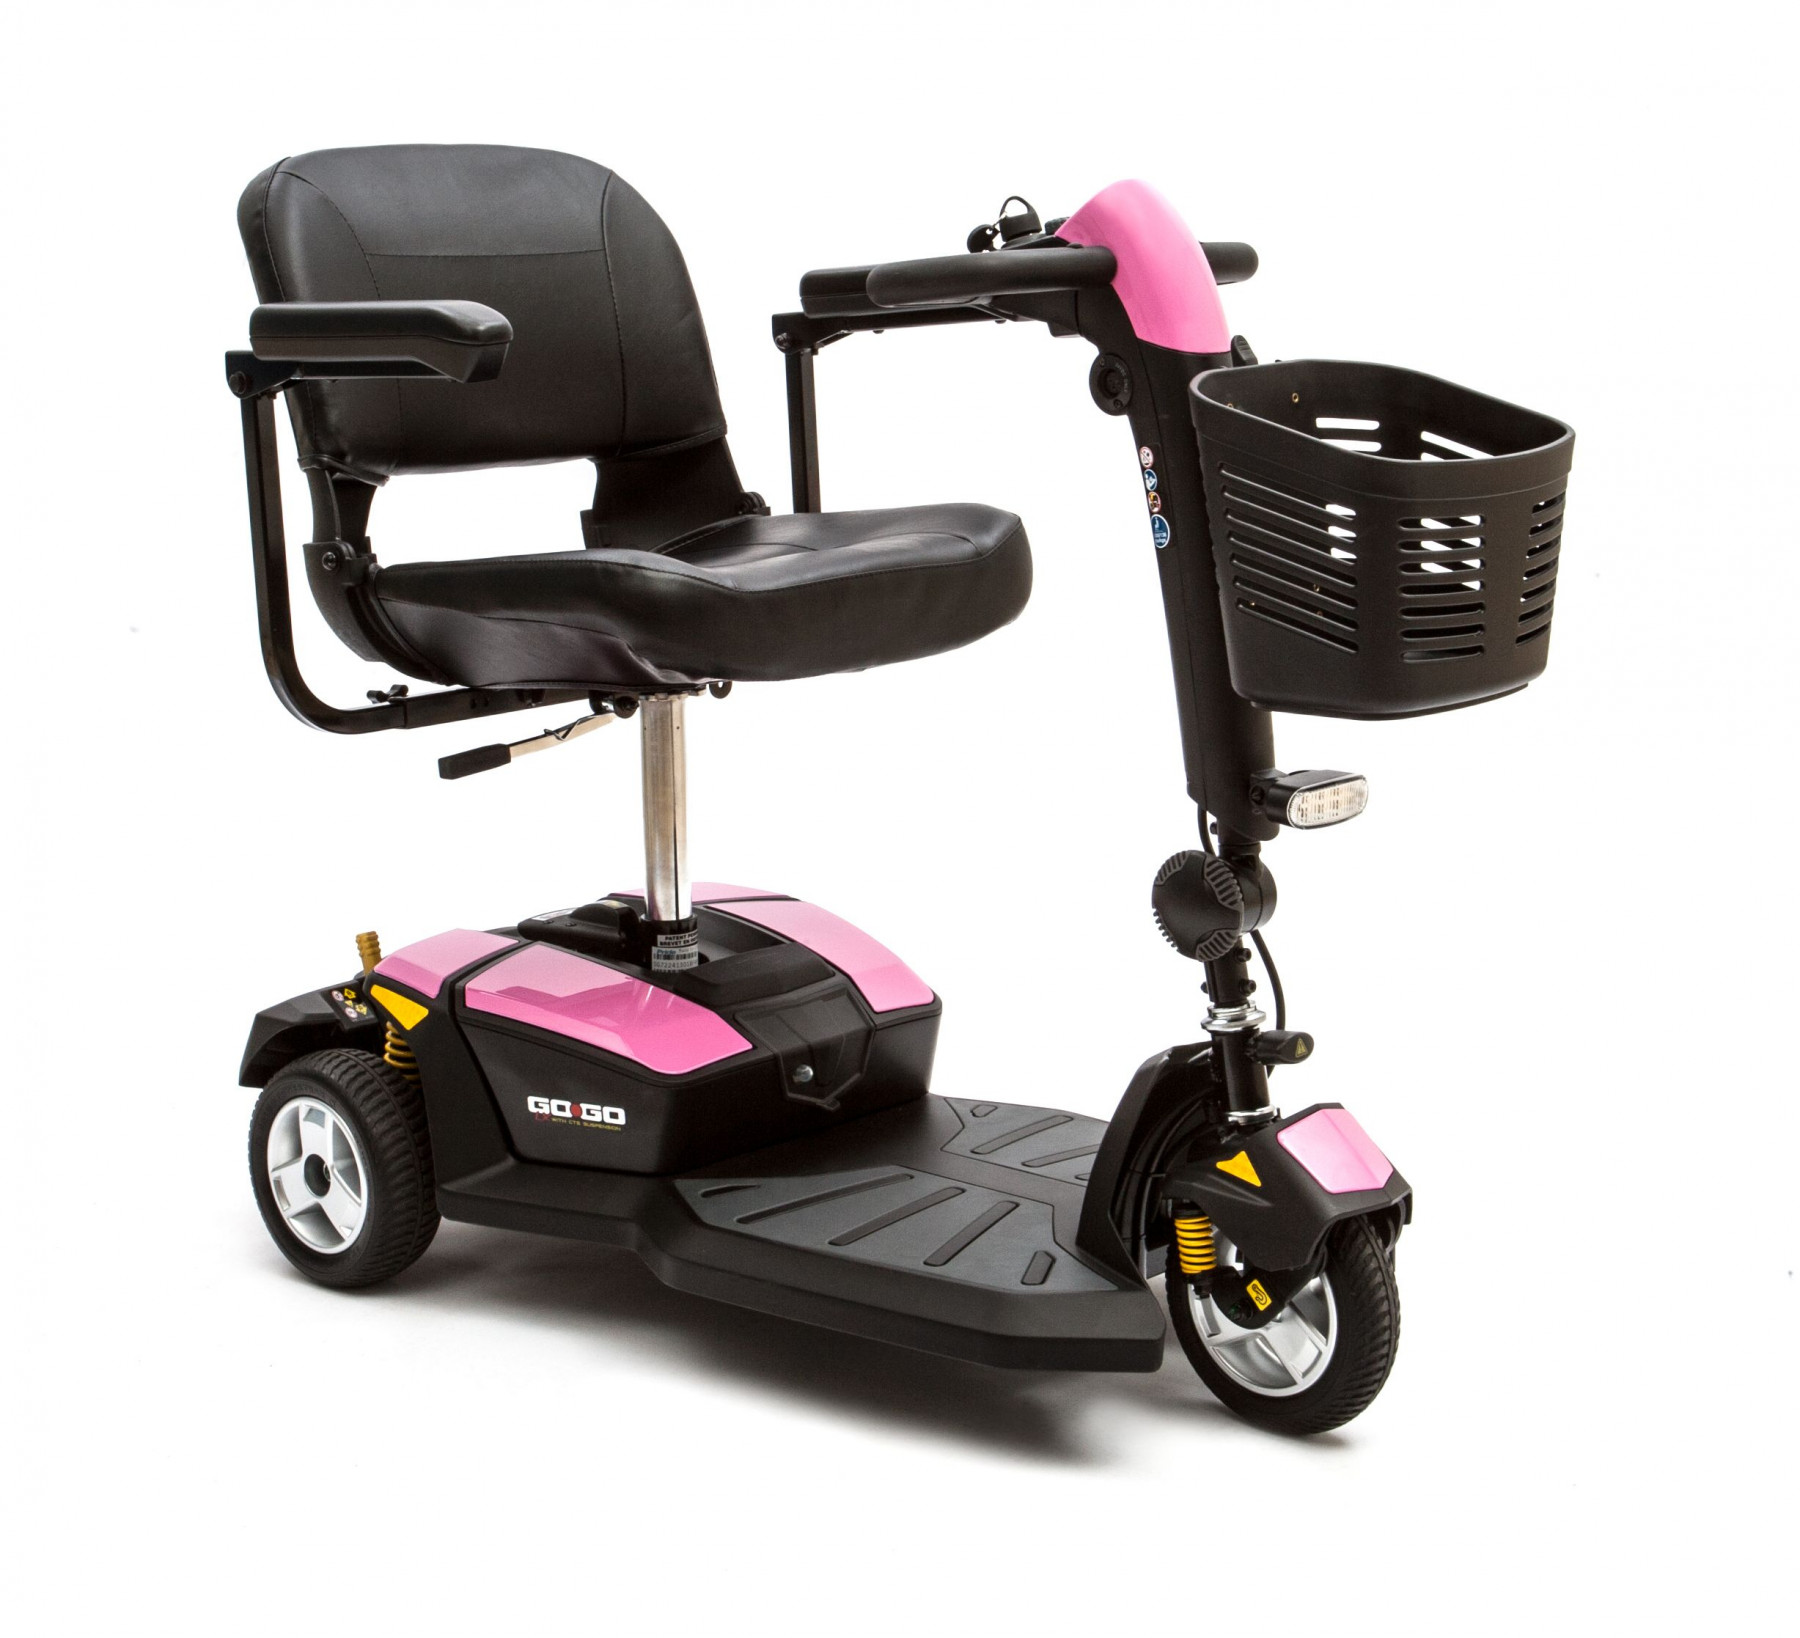 Pink electric wheelchair - Pride Go Go Lx 3 Wheel Scooter Pink Breast Cancer Awareness